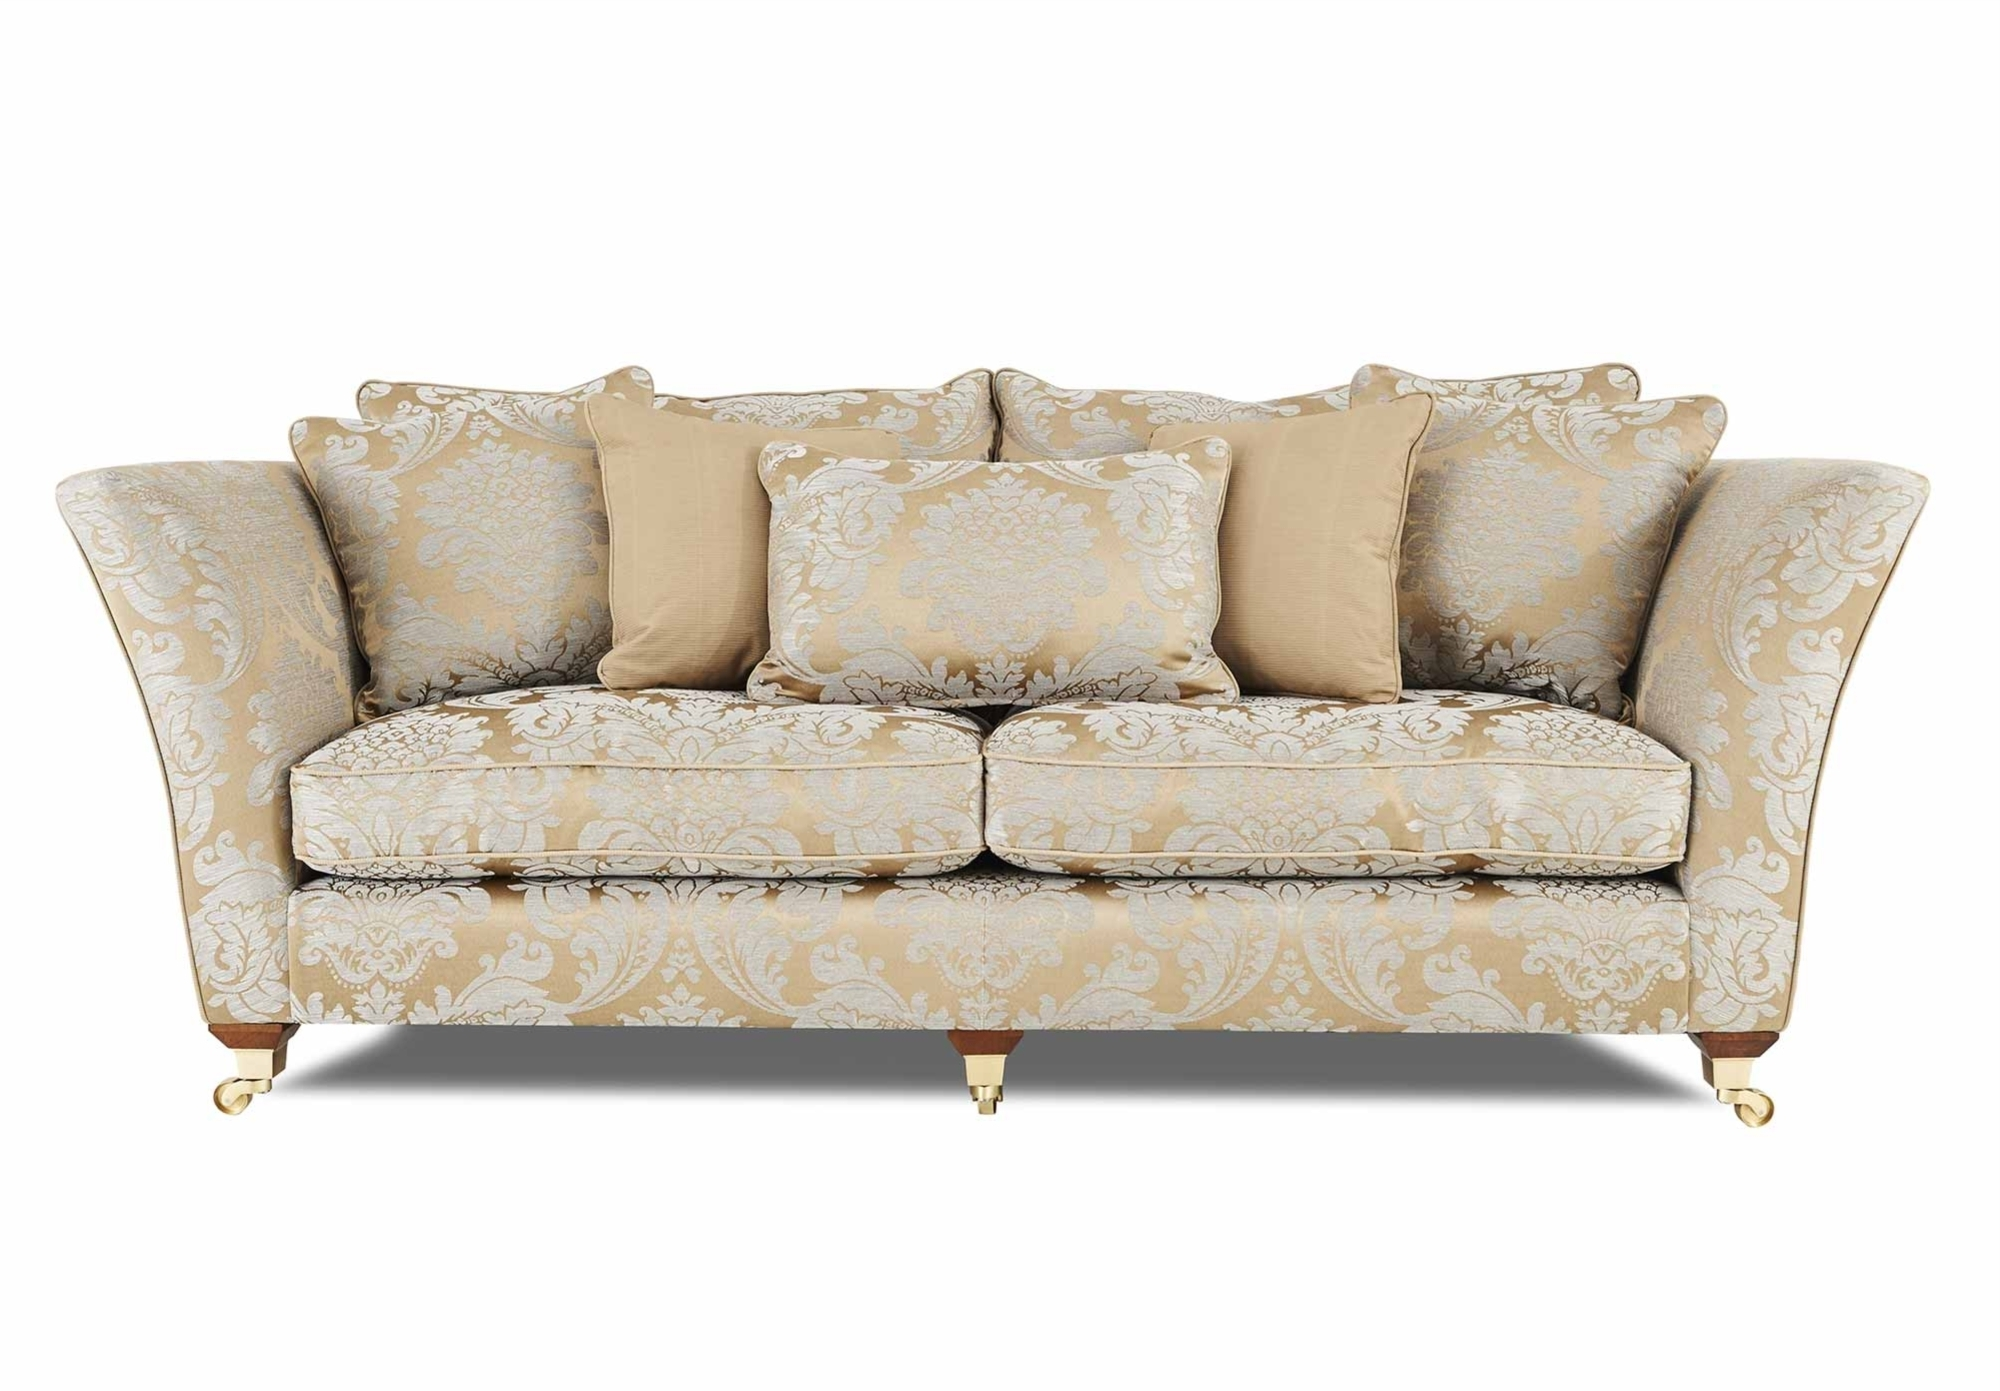 Most Current Kijiji Kitchener Sectional Sofas With Regard To Furniture : Contemporary Modern Tufted Sofa Delano 120 Tufted (View 7 of 15)